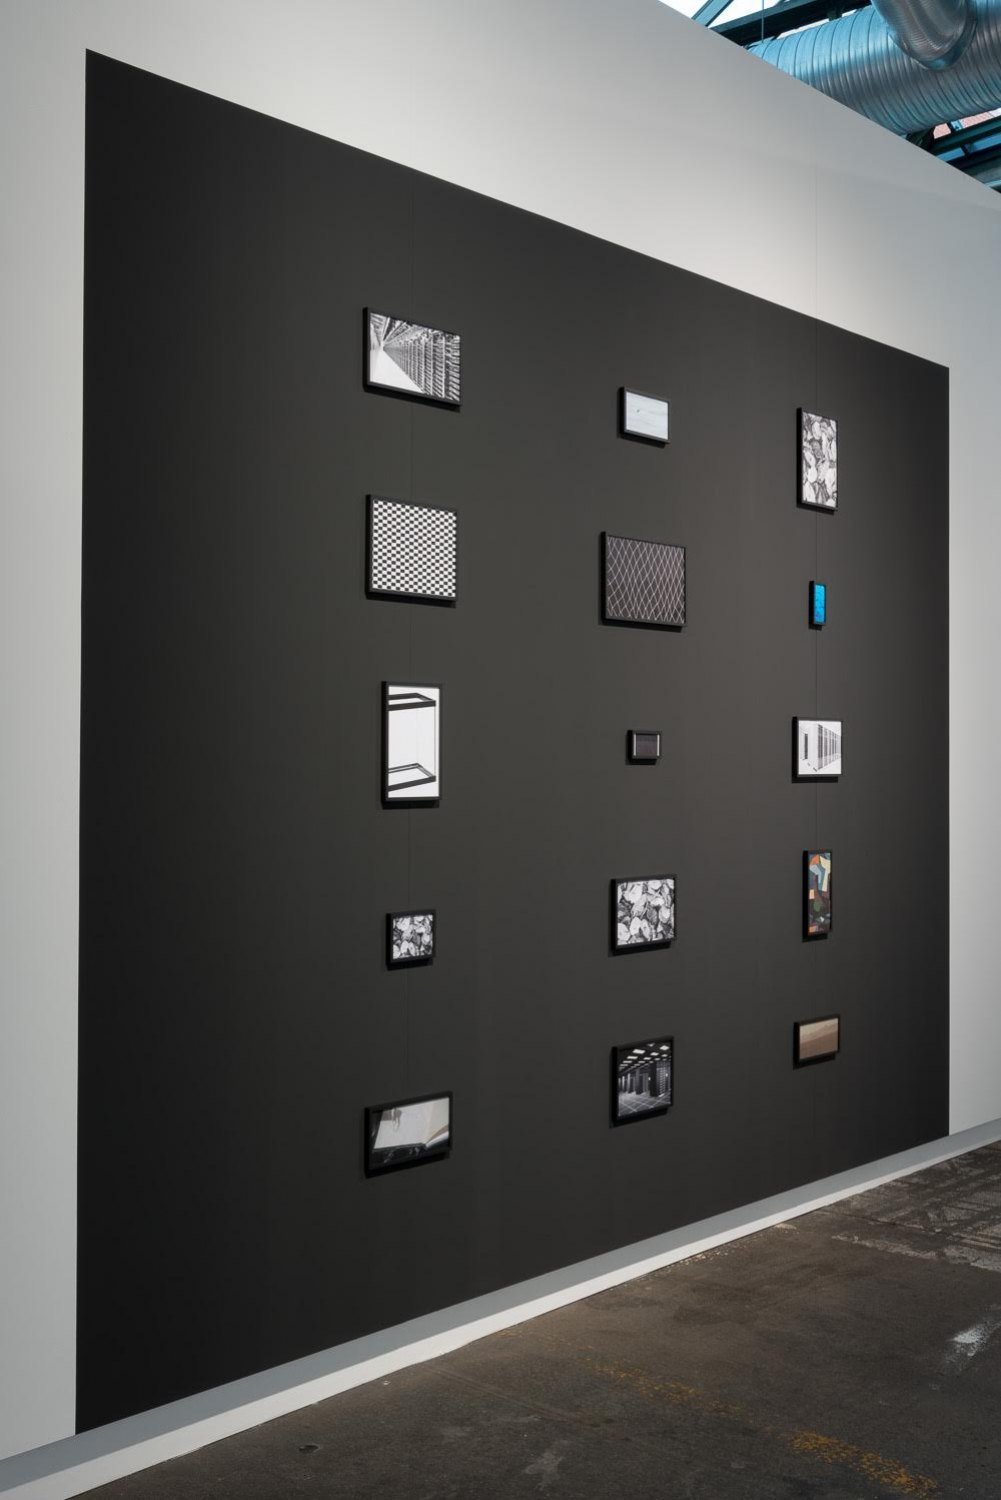 Sean Snyder Aspect Ratio (Topaz), 2015-2016 15 color and b/w archival pigment prints on matte paper, various formats, 1 cm black aluminum frame, on 300 cm high x 400 cm wide wall painted RAL 9017